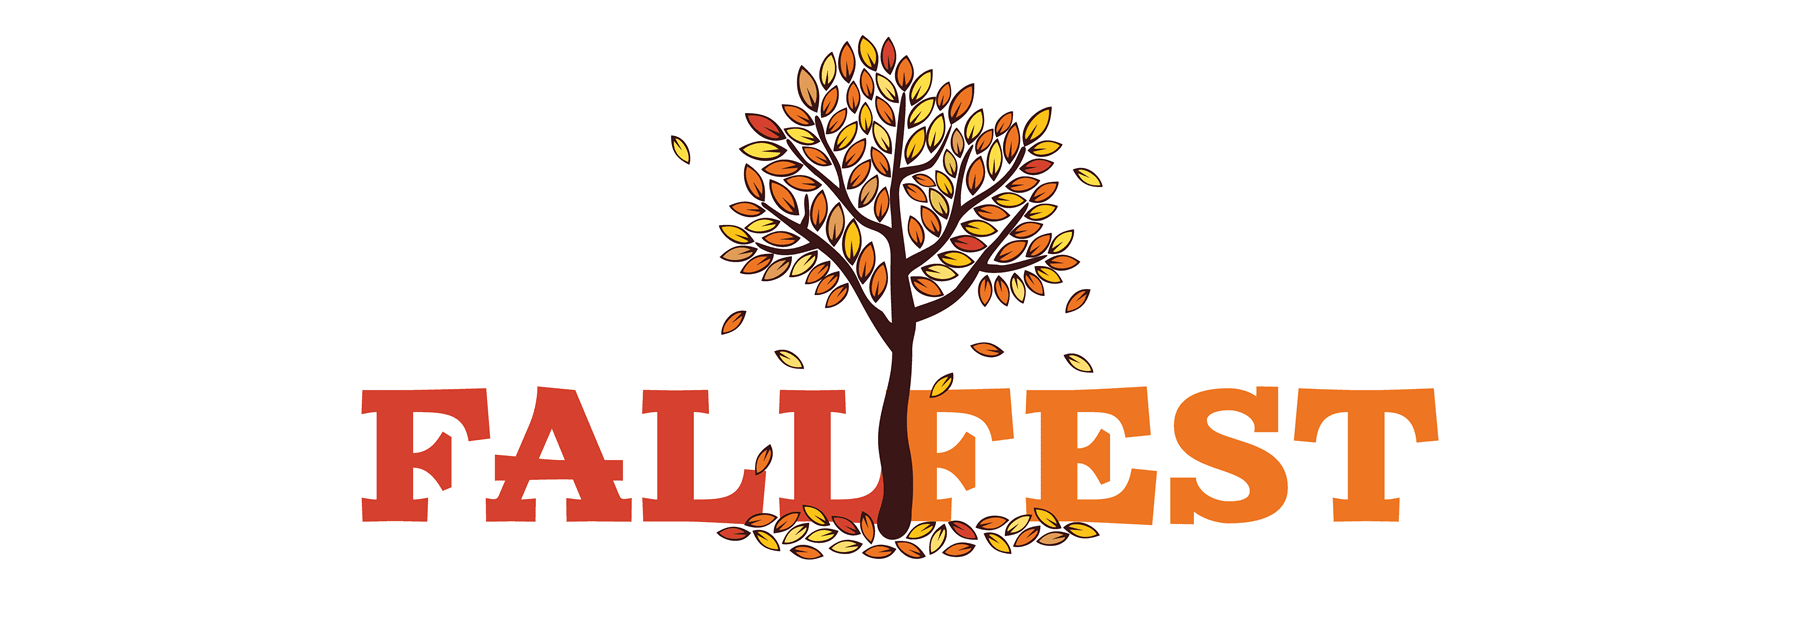 Fall Fest Weekend